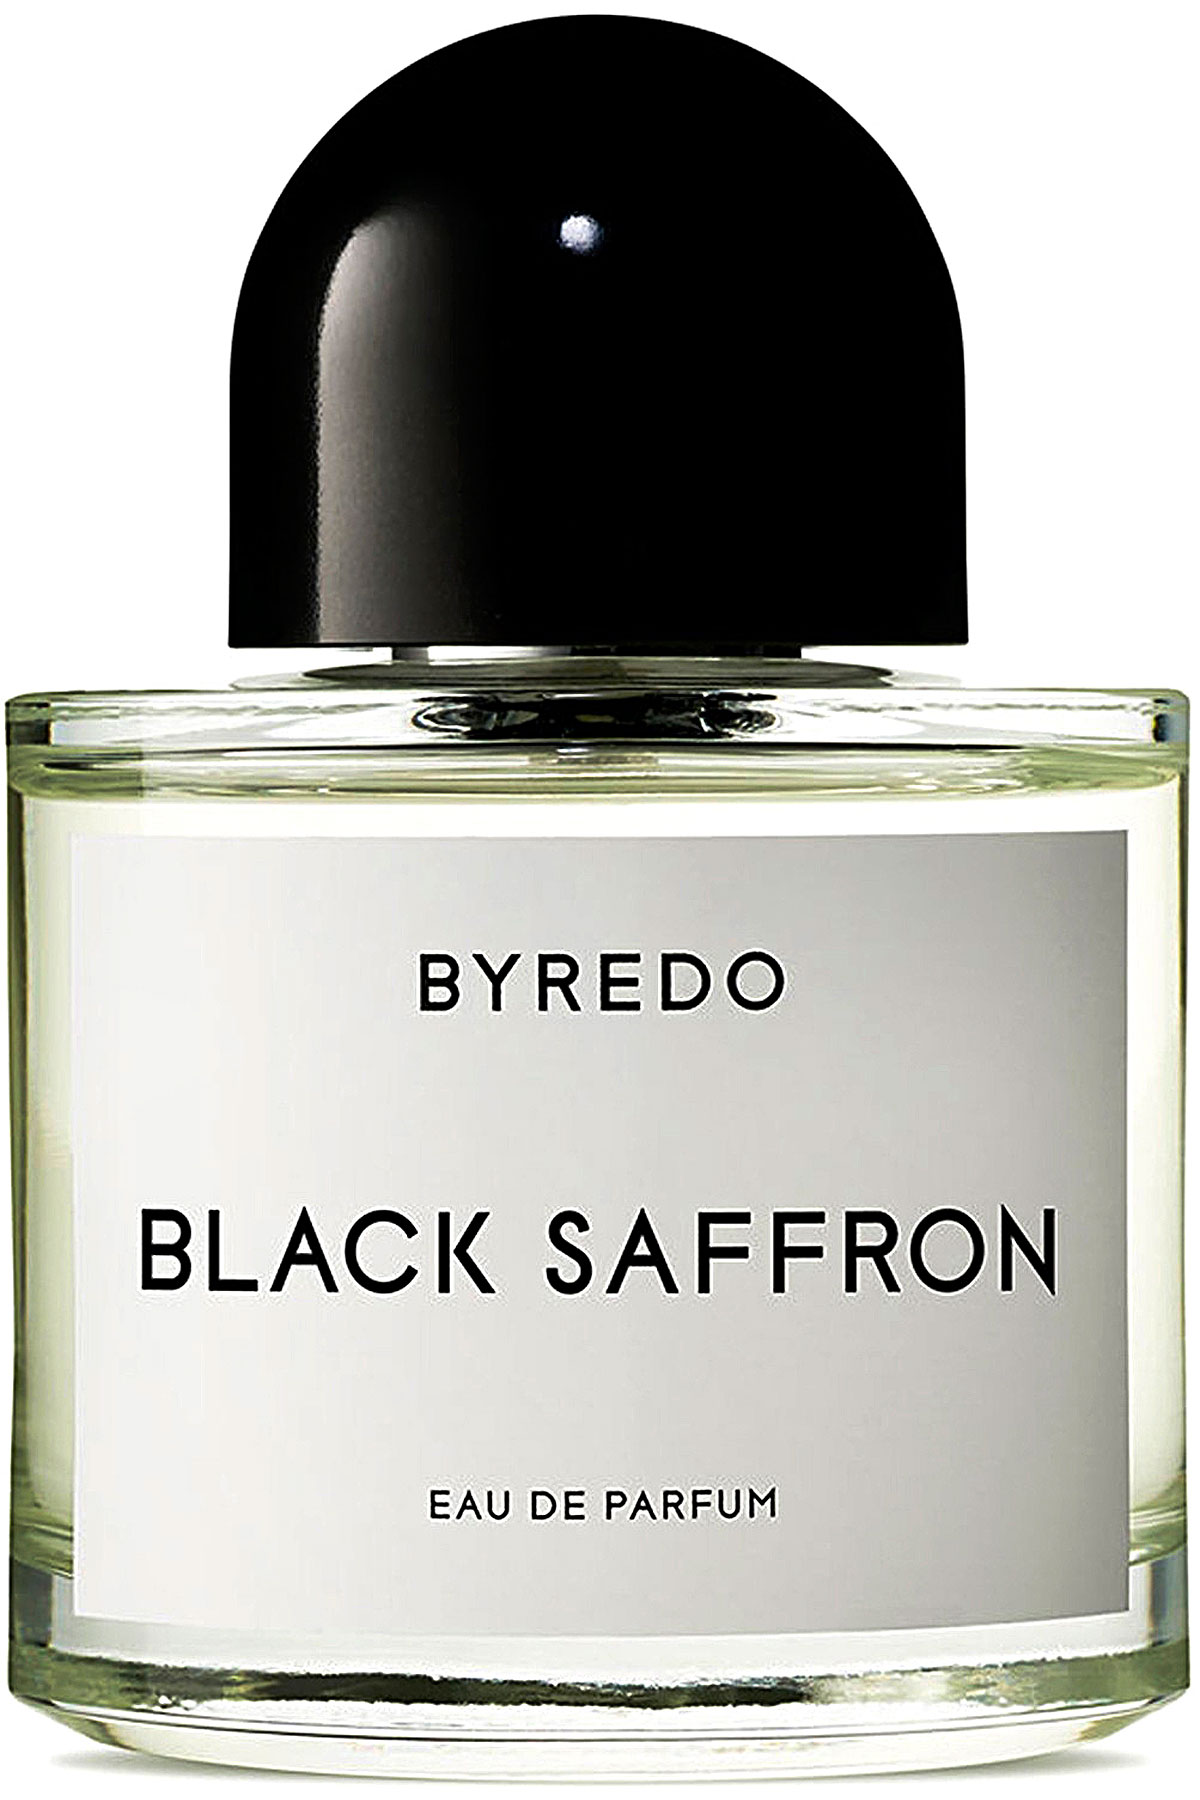 Byredo Fragrances for Women, Black Saffron - Eau De Parfum - 50 Ml, 2019, 50 ml